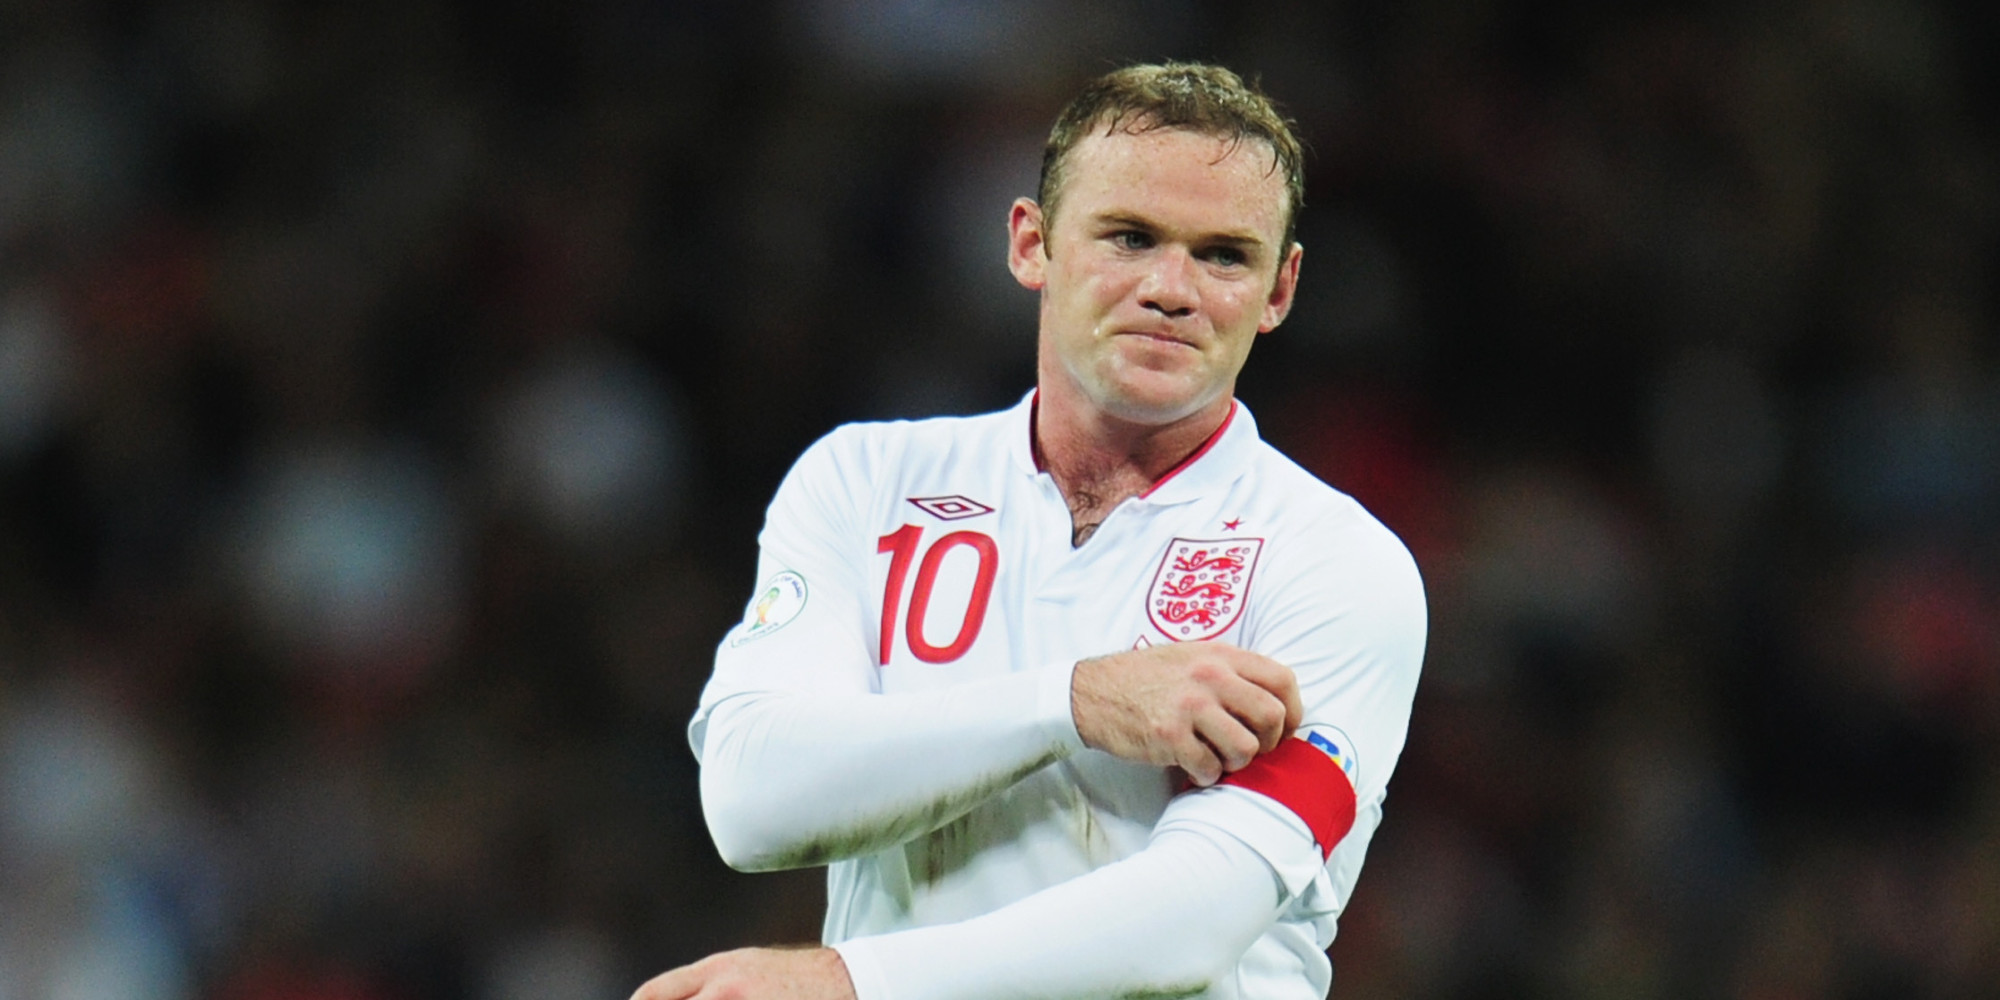 Wayne Rooney England Captain Wayne Rooney New England Captain Three Lions Post War Skippers